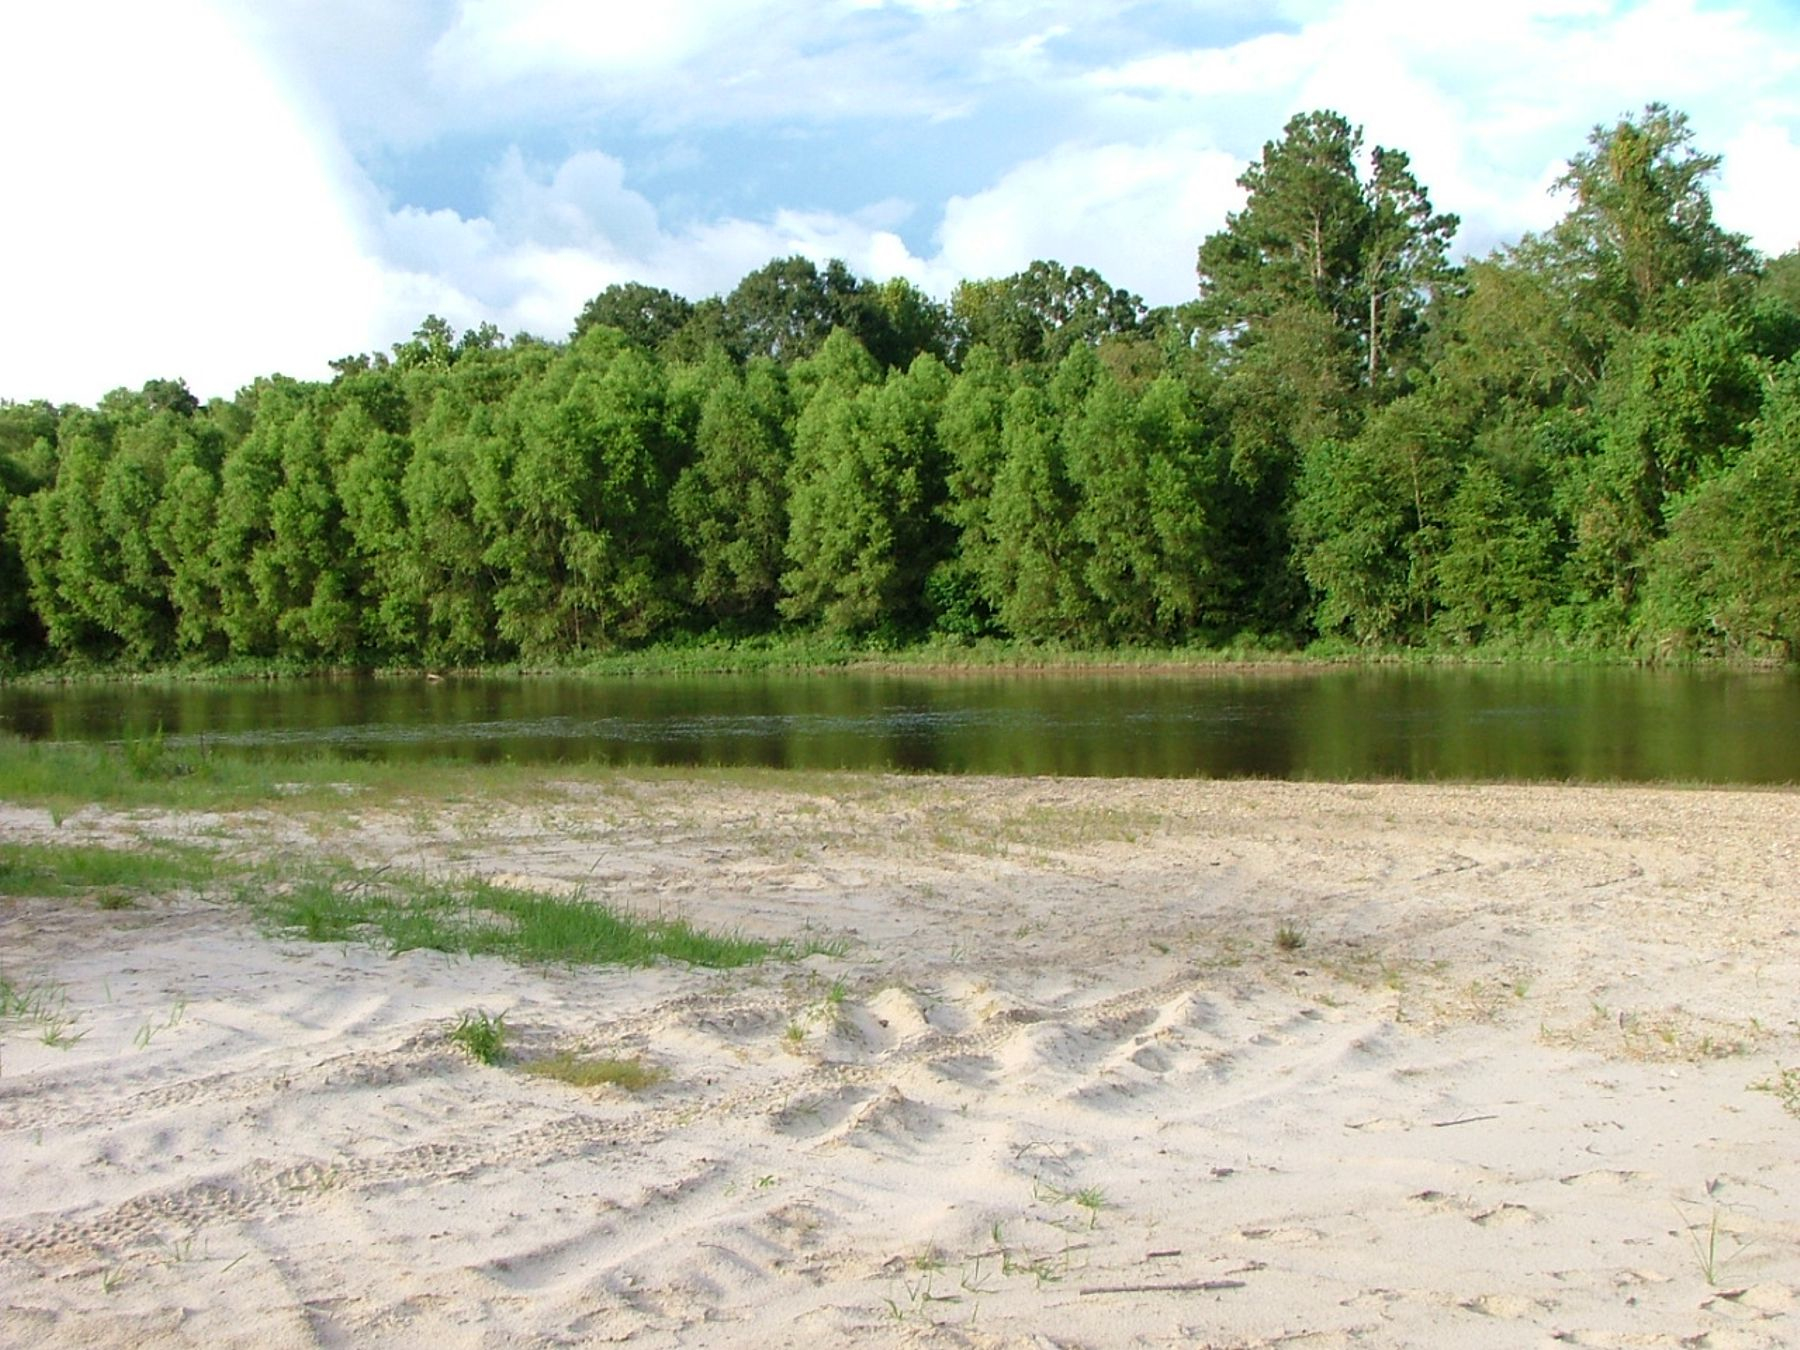 bogue chitto dating site Bogue chitto tubing center is the home of the oldest tubing, kayaking, camping, and canoeing business in washington parish family owned and operated.